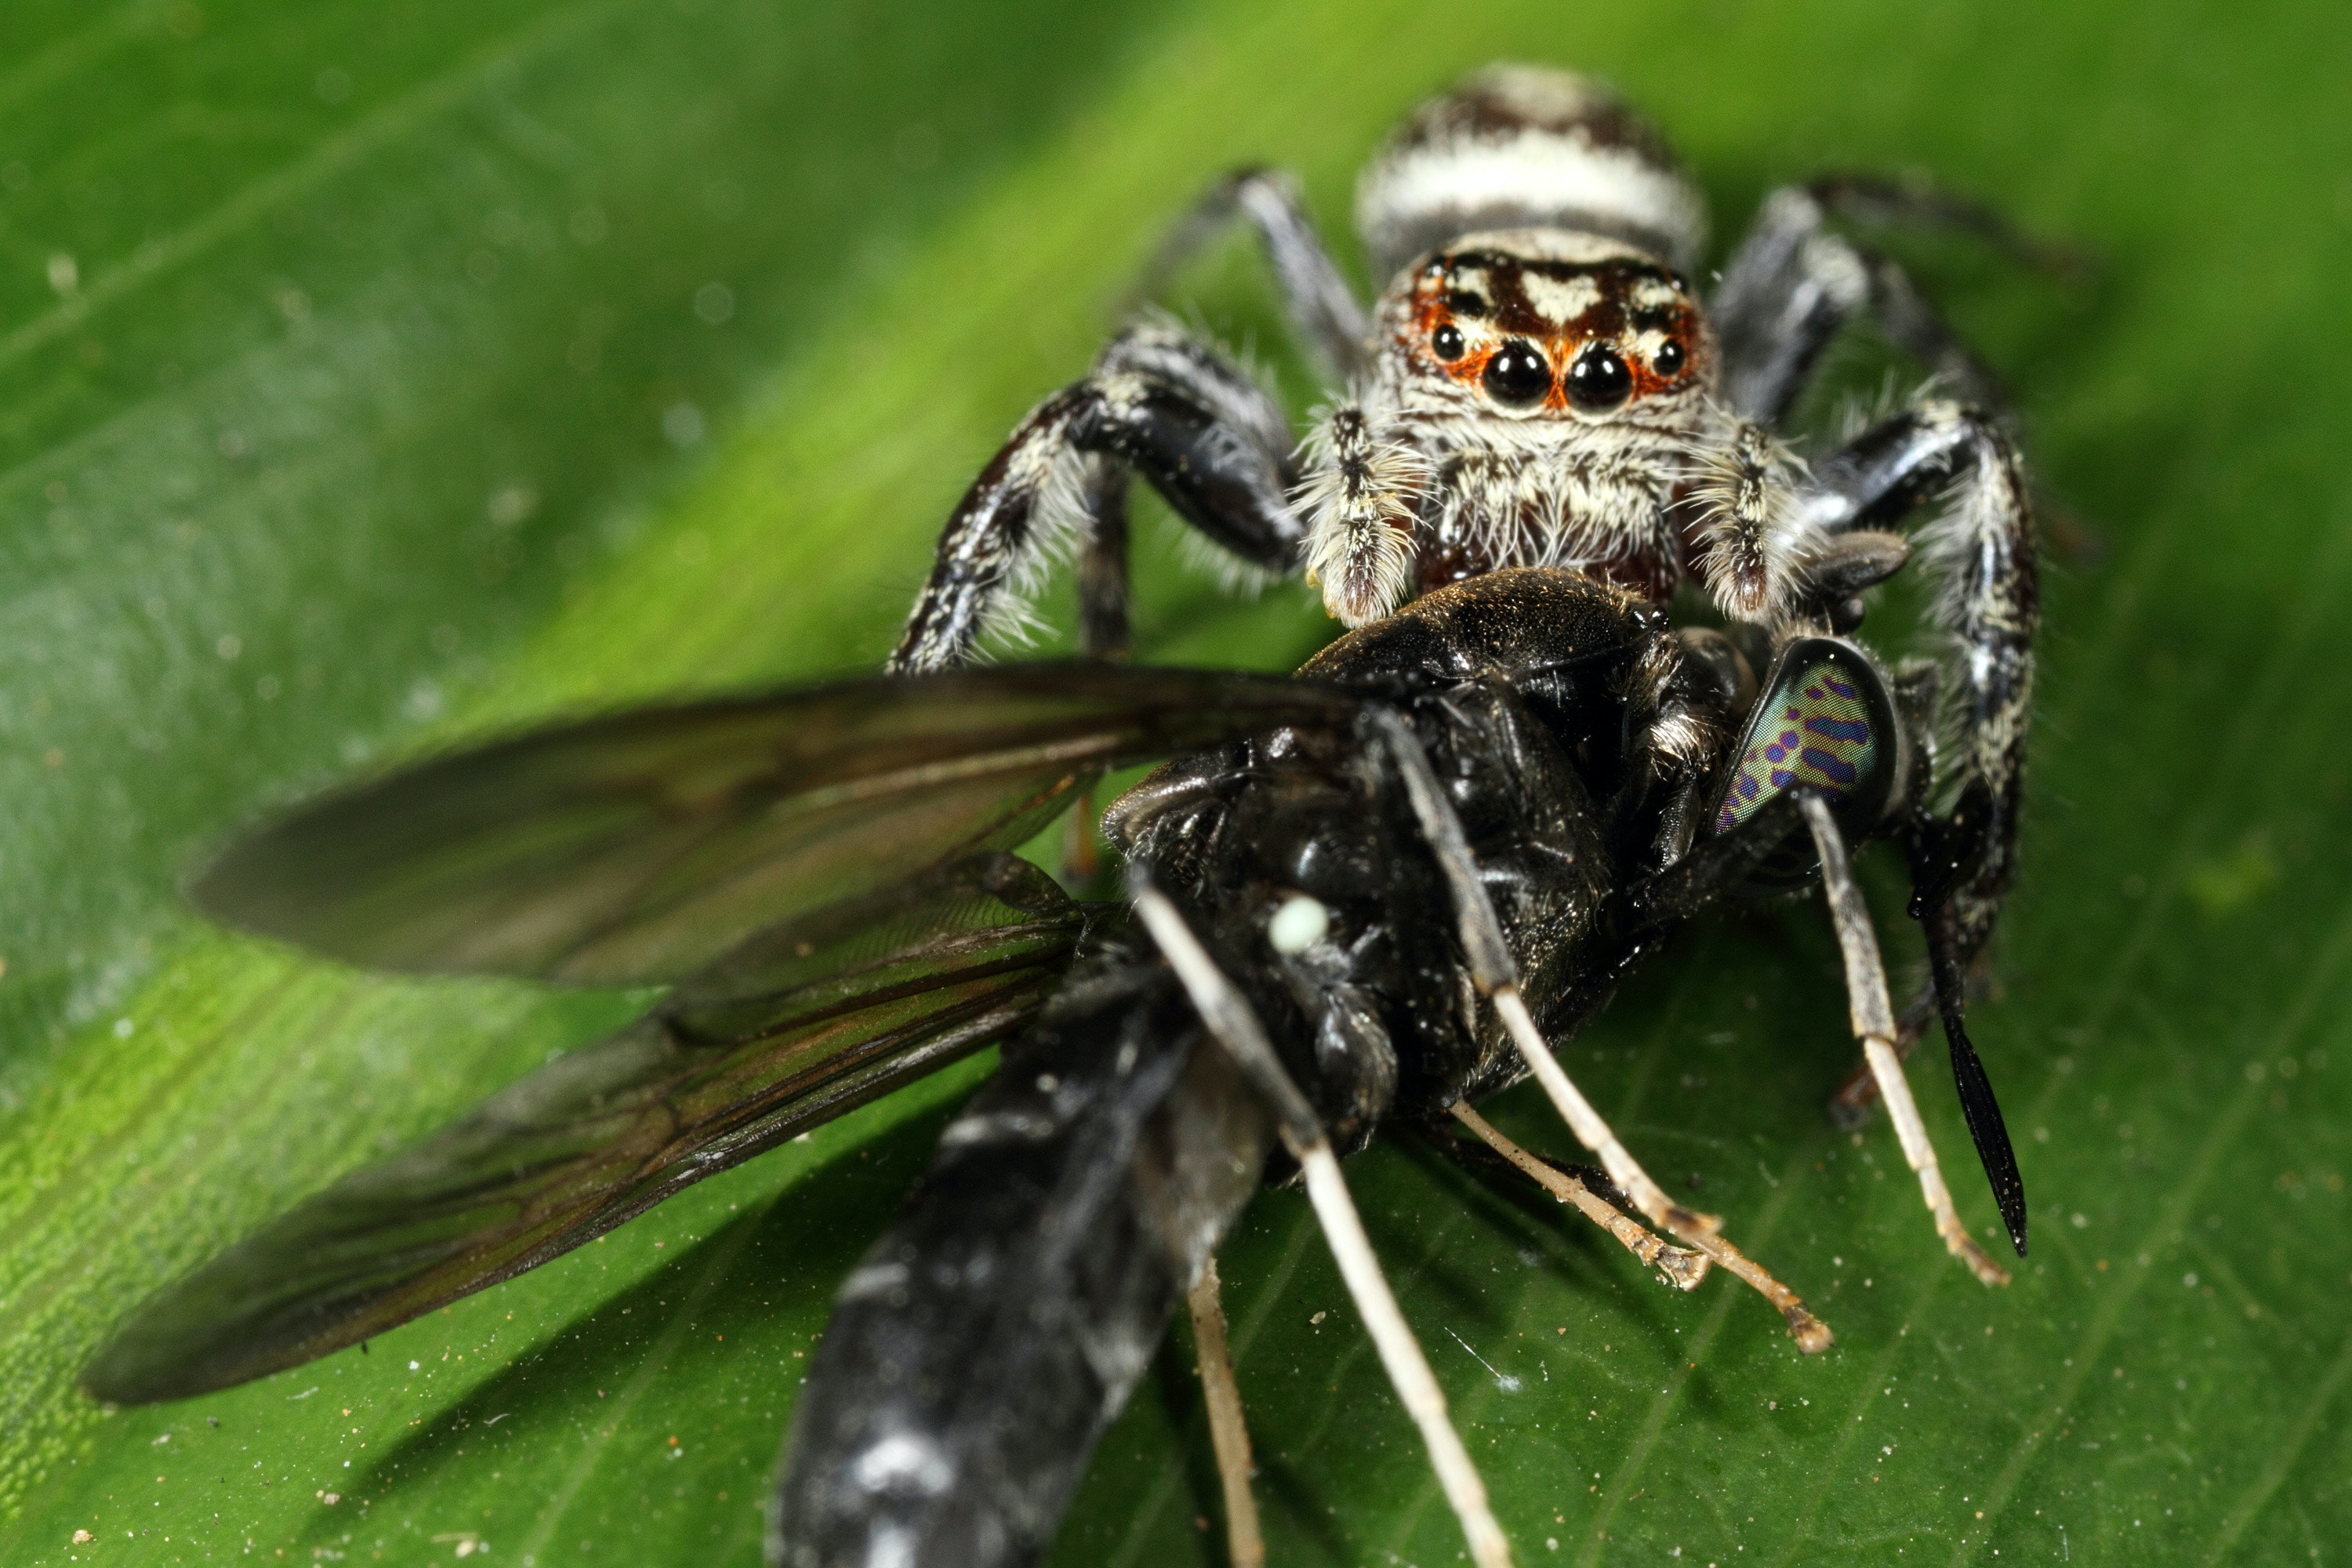 jumping spiders are good at catching large pests like flies jim mclean author provided